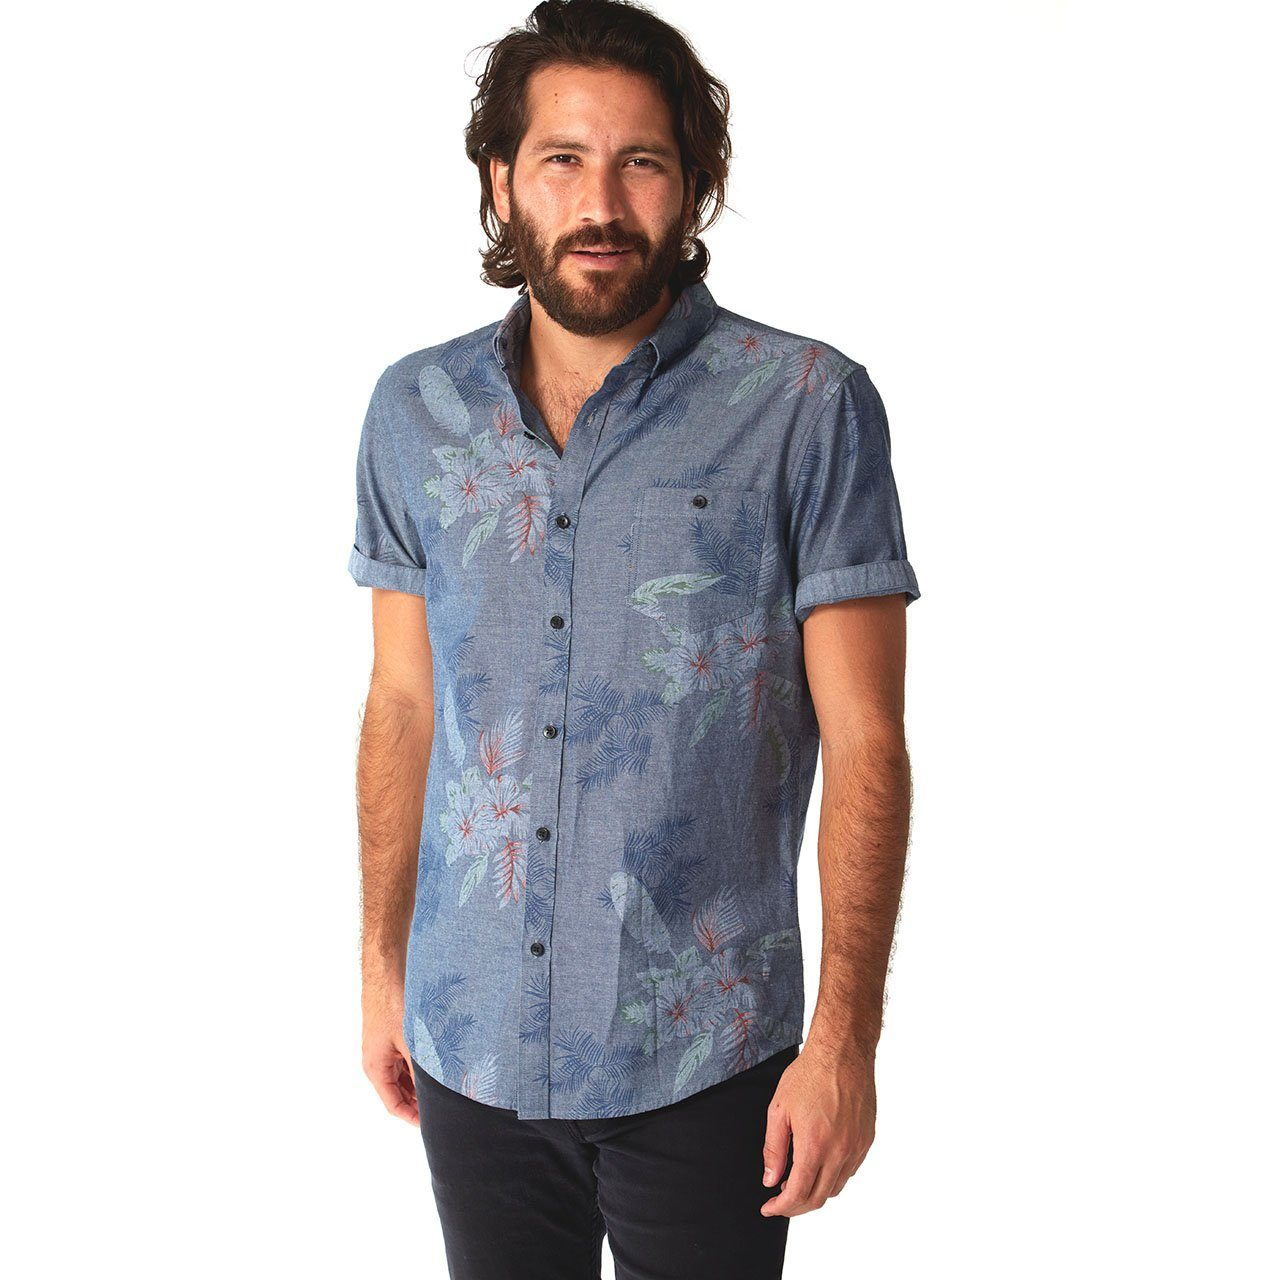 Short Sleeve Shirt, Shirt - Rex Chambray Print Shirt